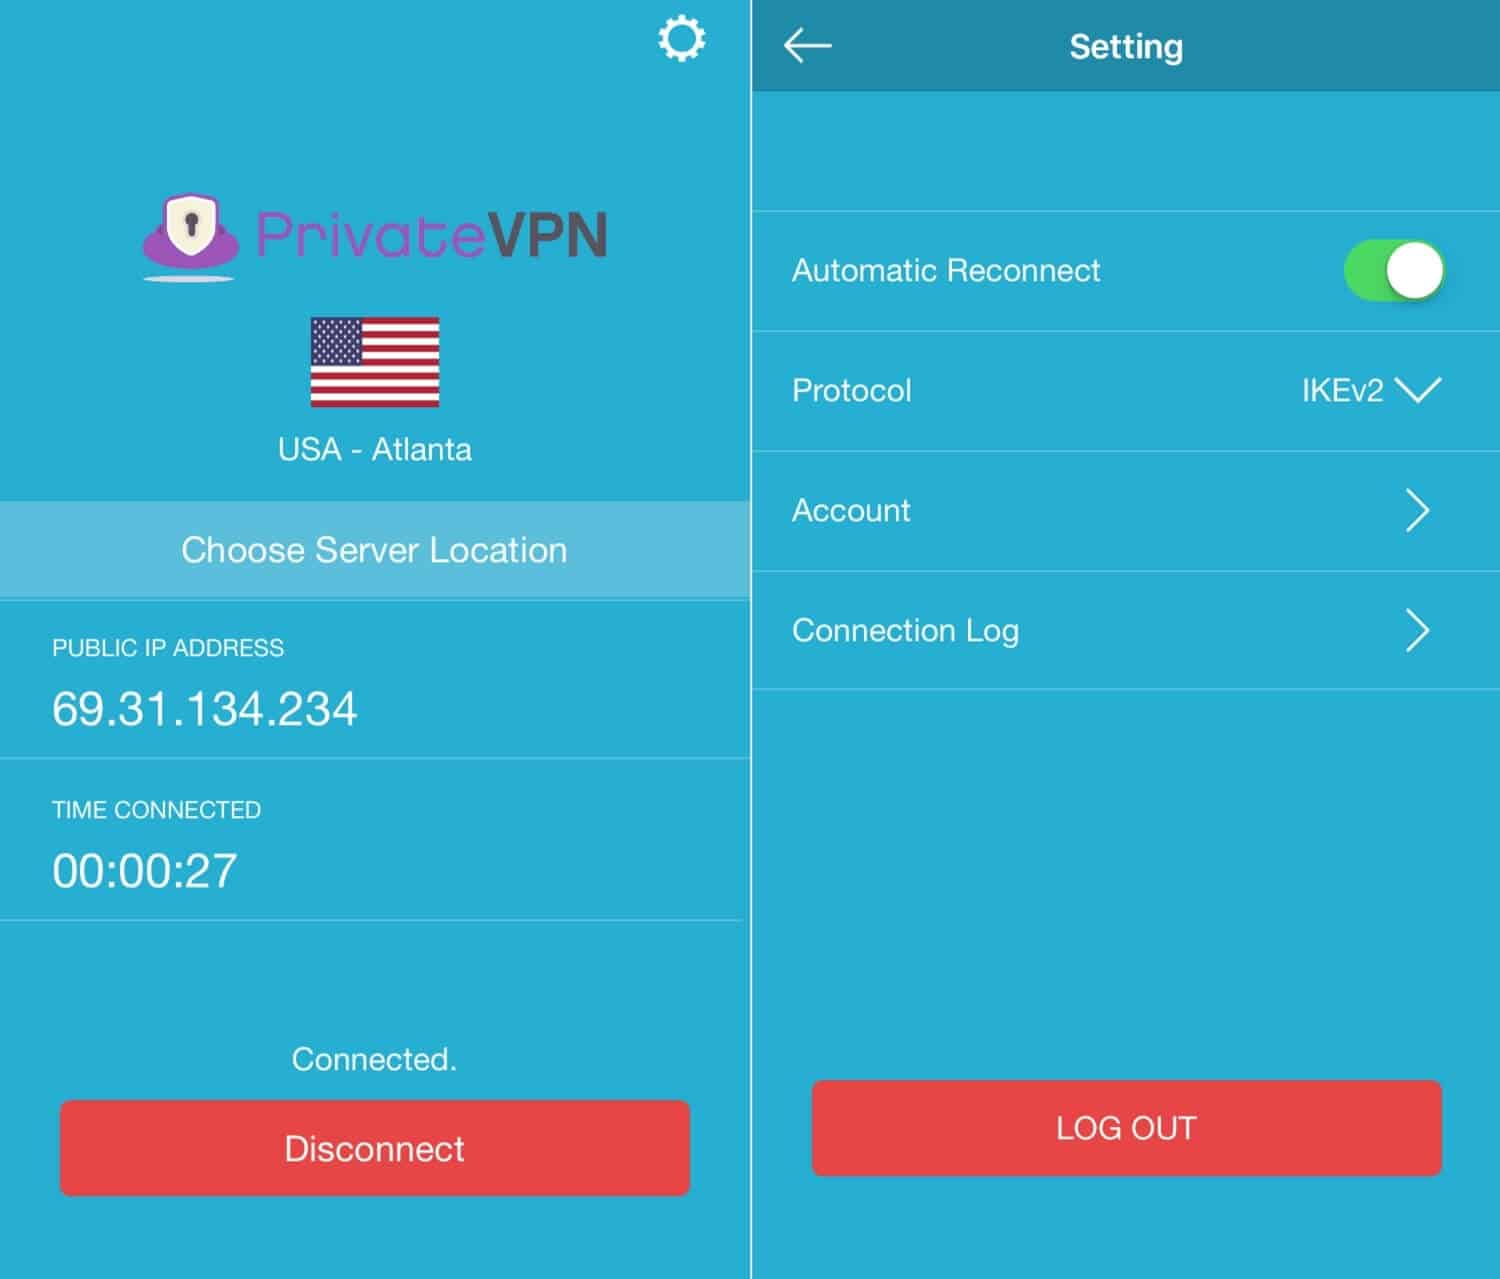 PrivateVPN Review 2019 - Save 83% on this Fast, Secure VPN